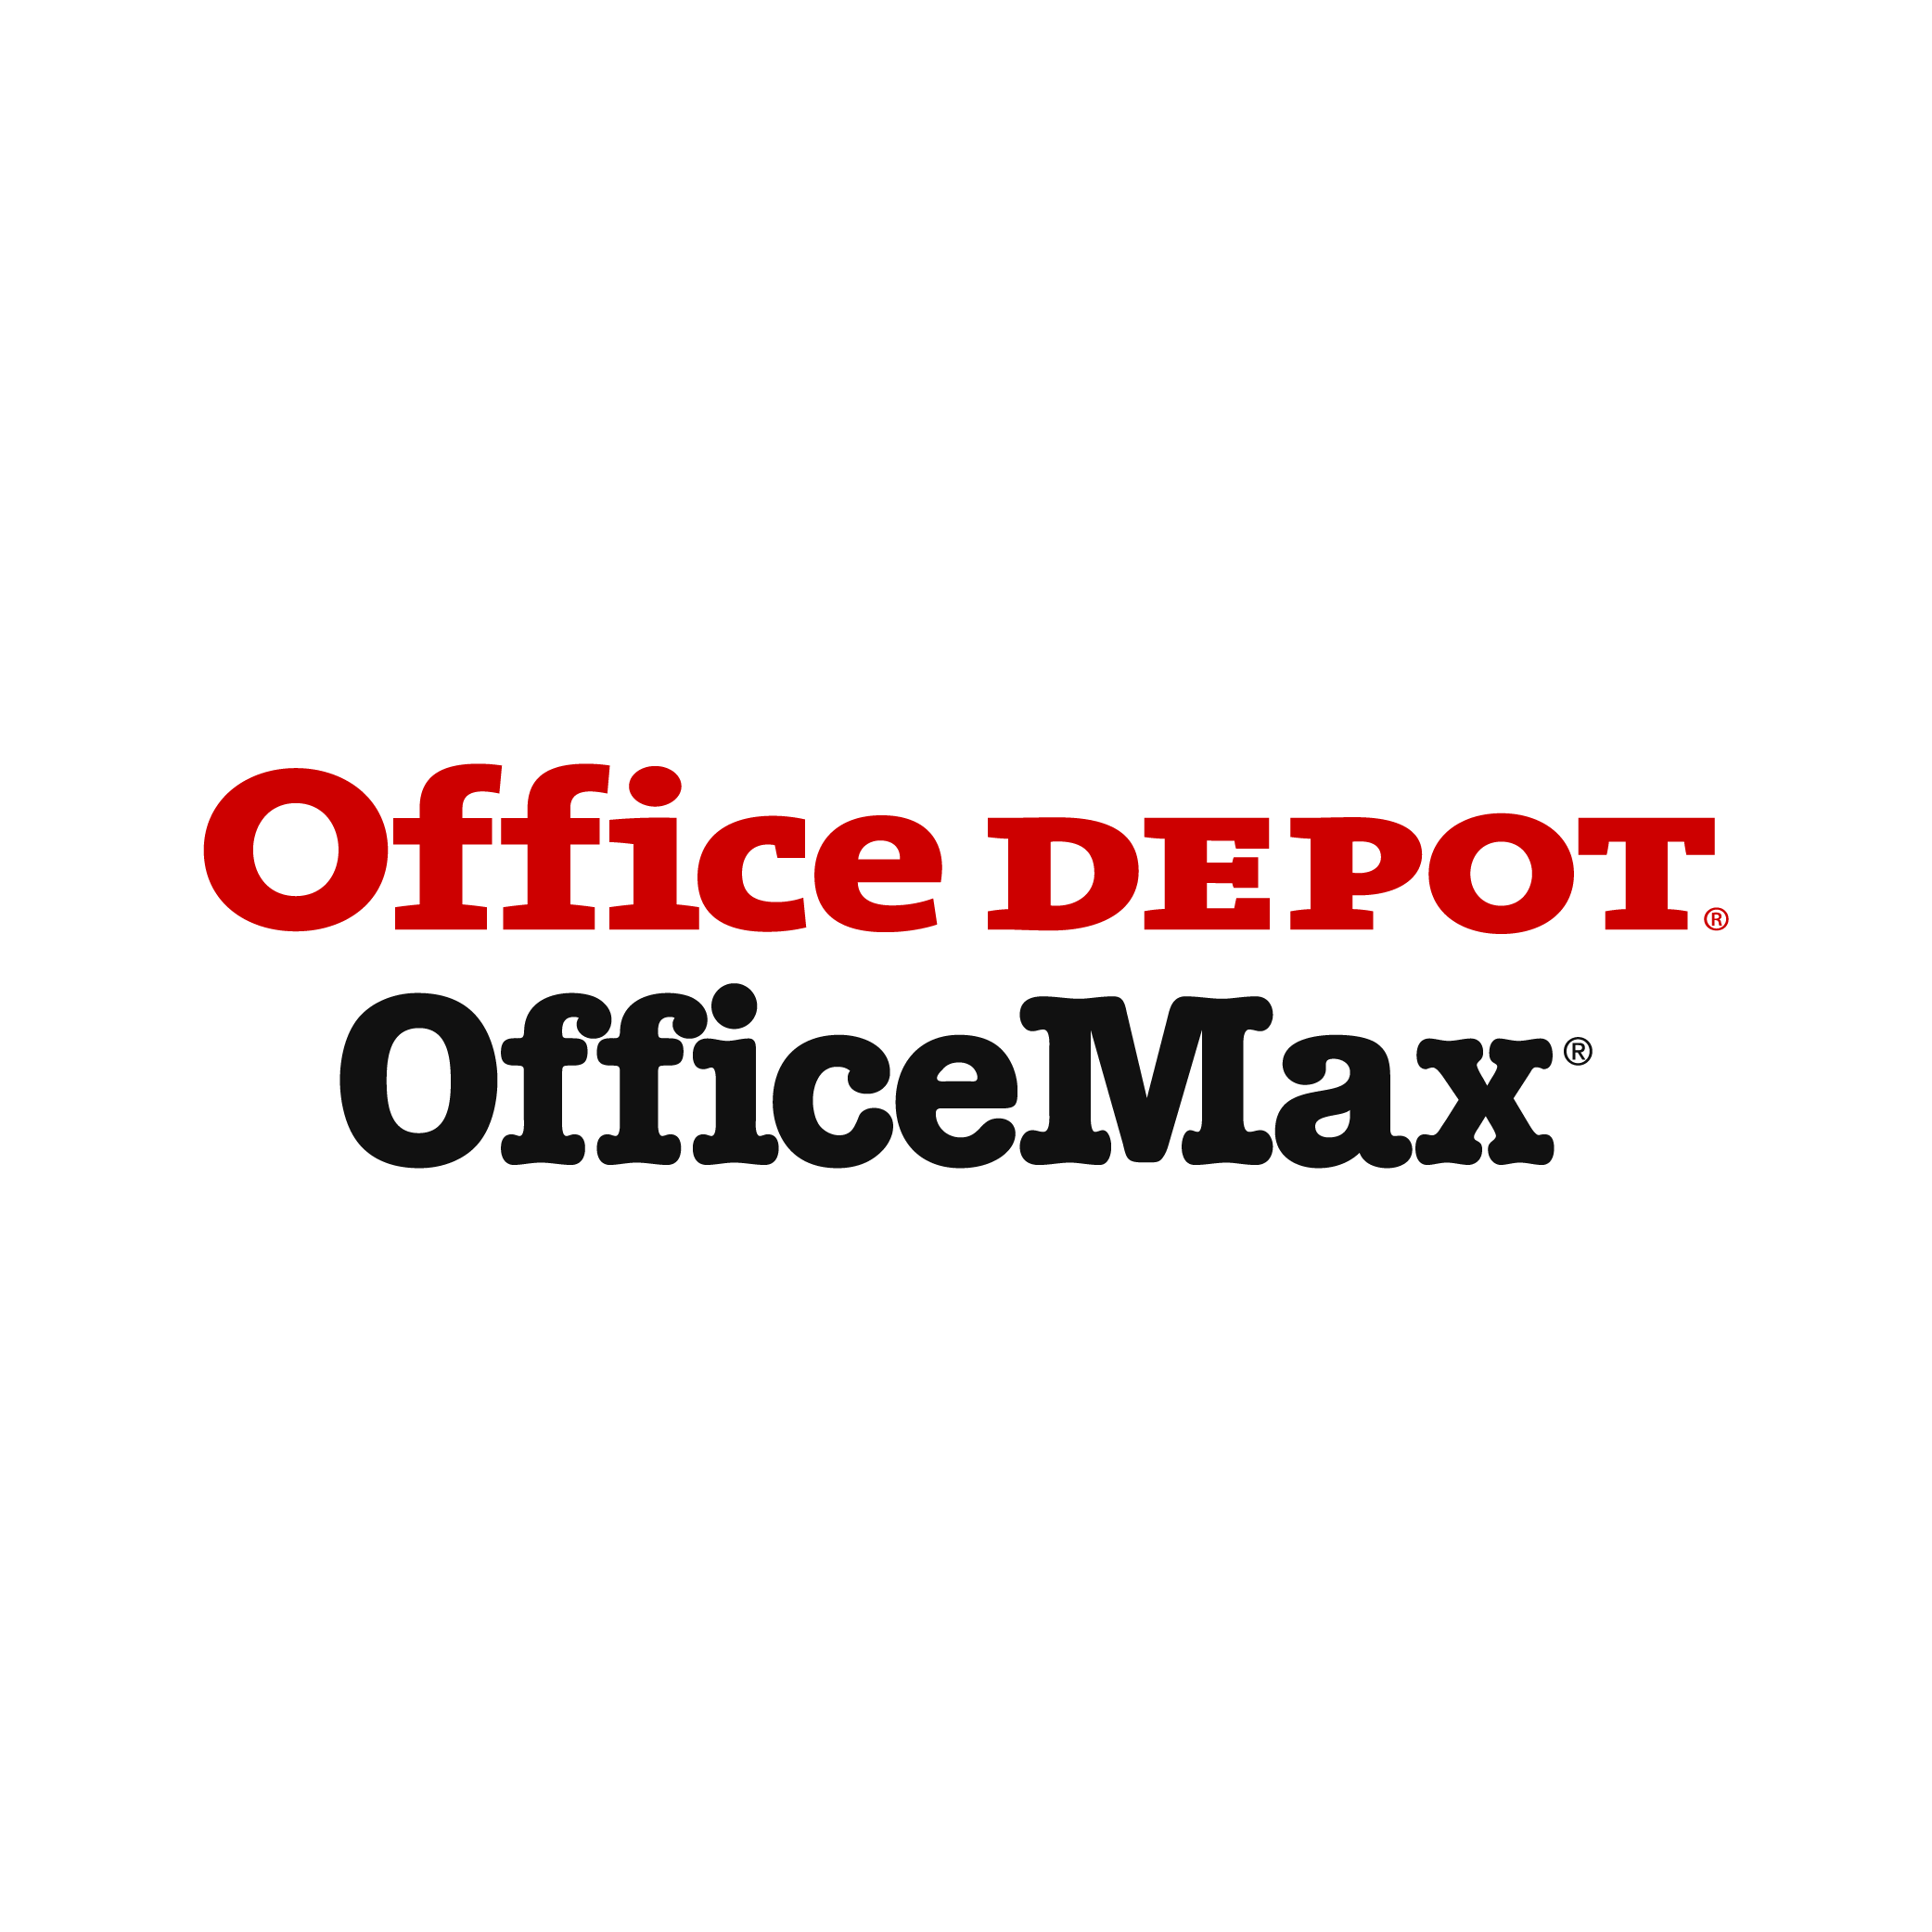 Office Depot - 1 Photos - Office Supply Stores - Marietta, GA - Reviews - Kudzu.com